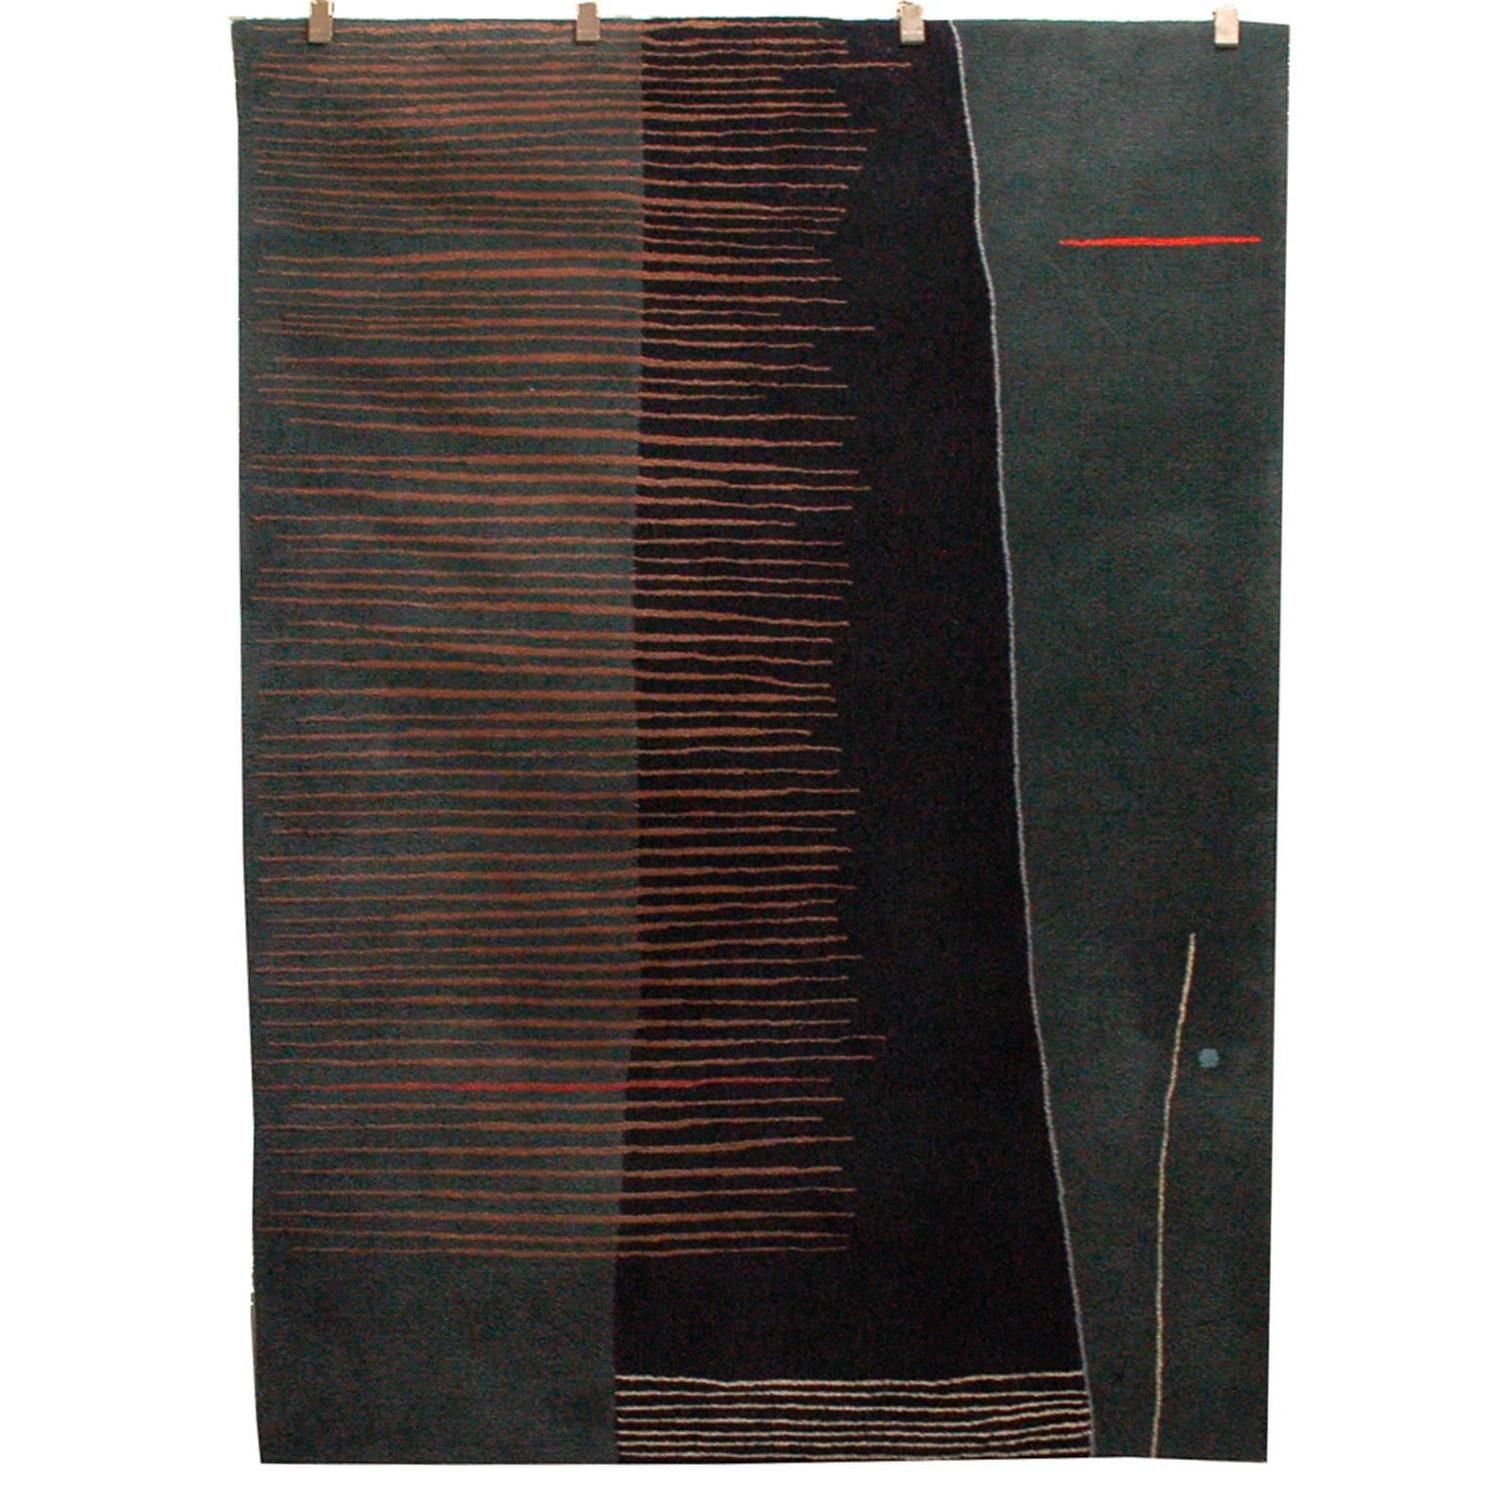 Meinecke Collection Wool Rug For Herman Miller At 1stdibs